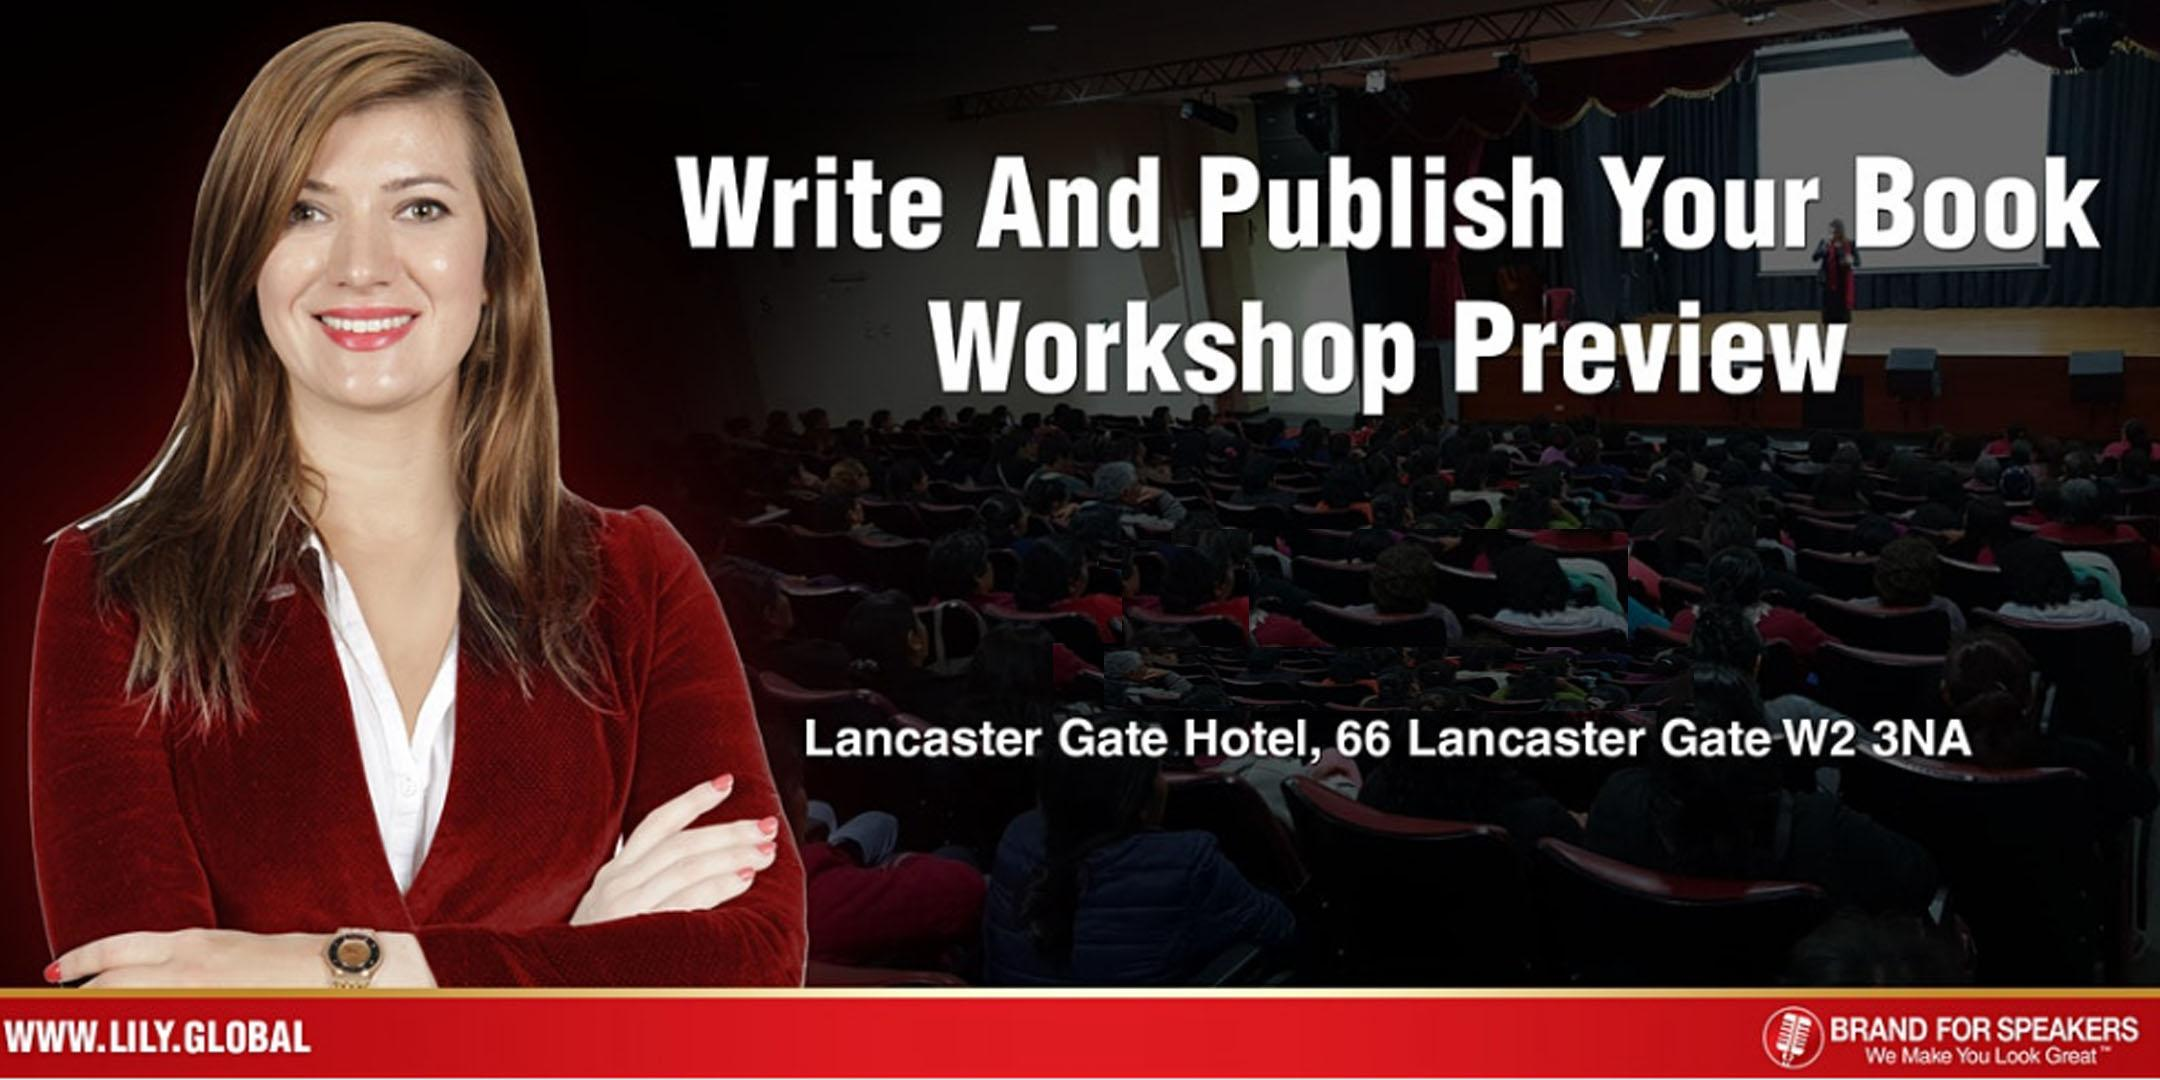 Want To Raise Your Influence? Become An Author Workshop 11 April 2020 Noon